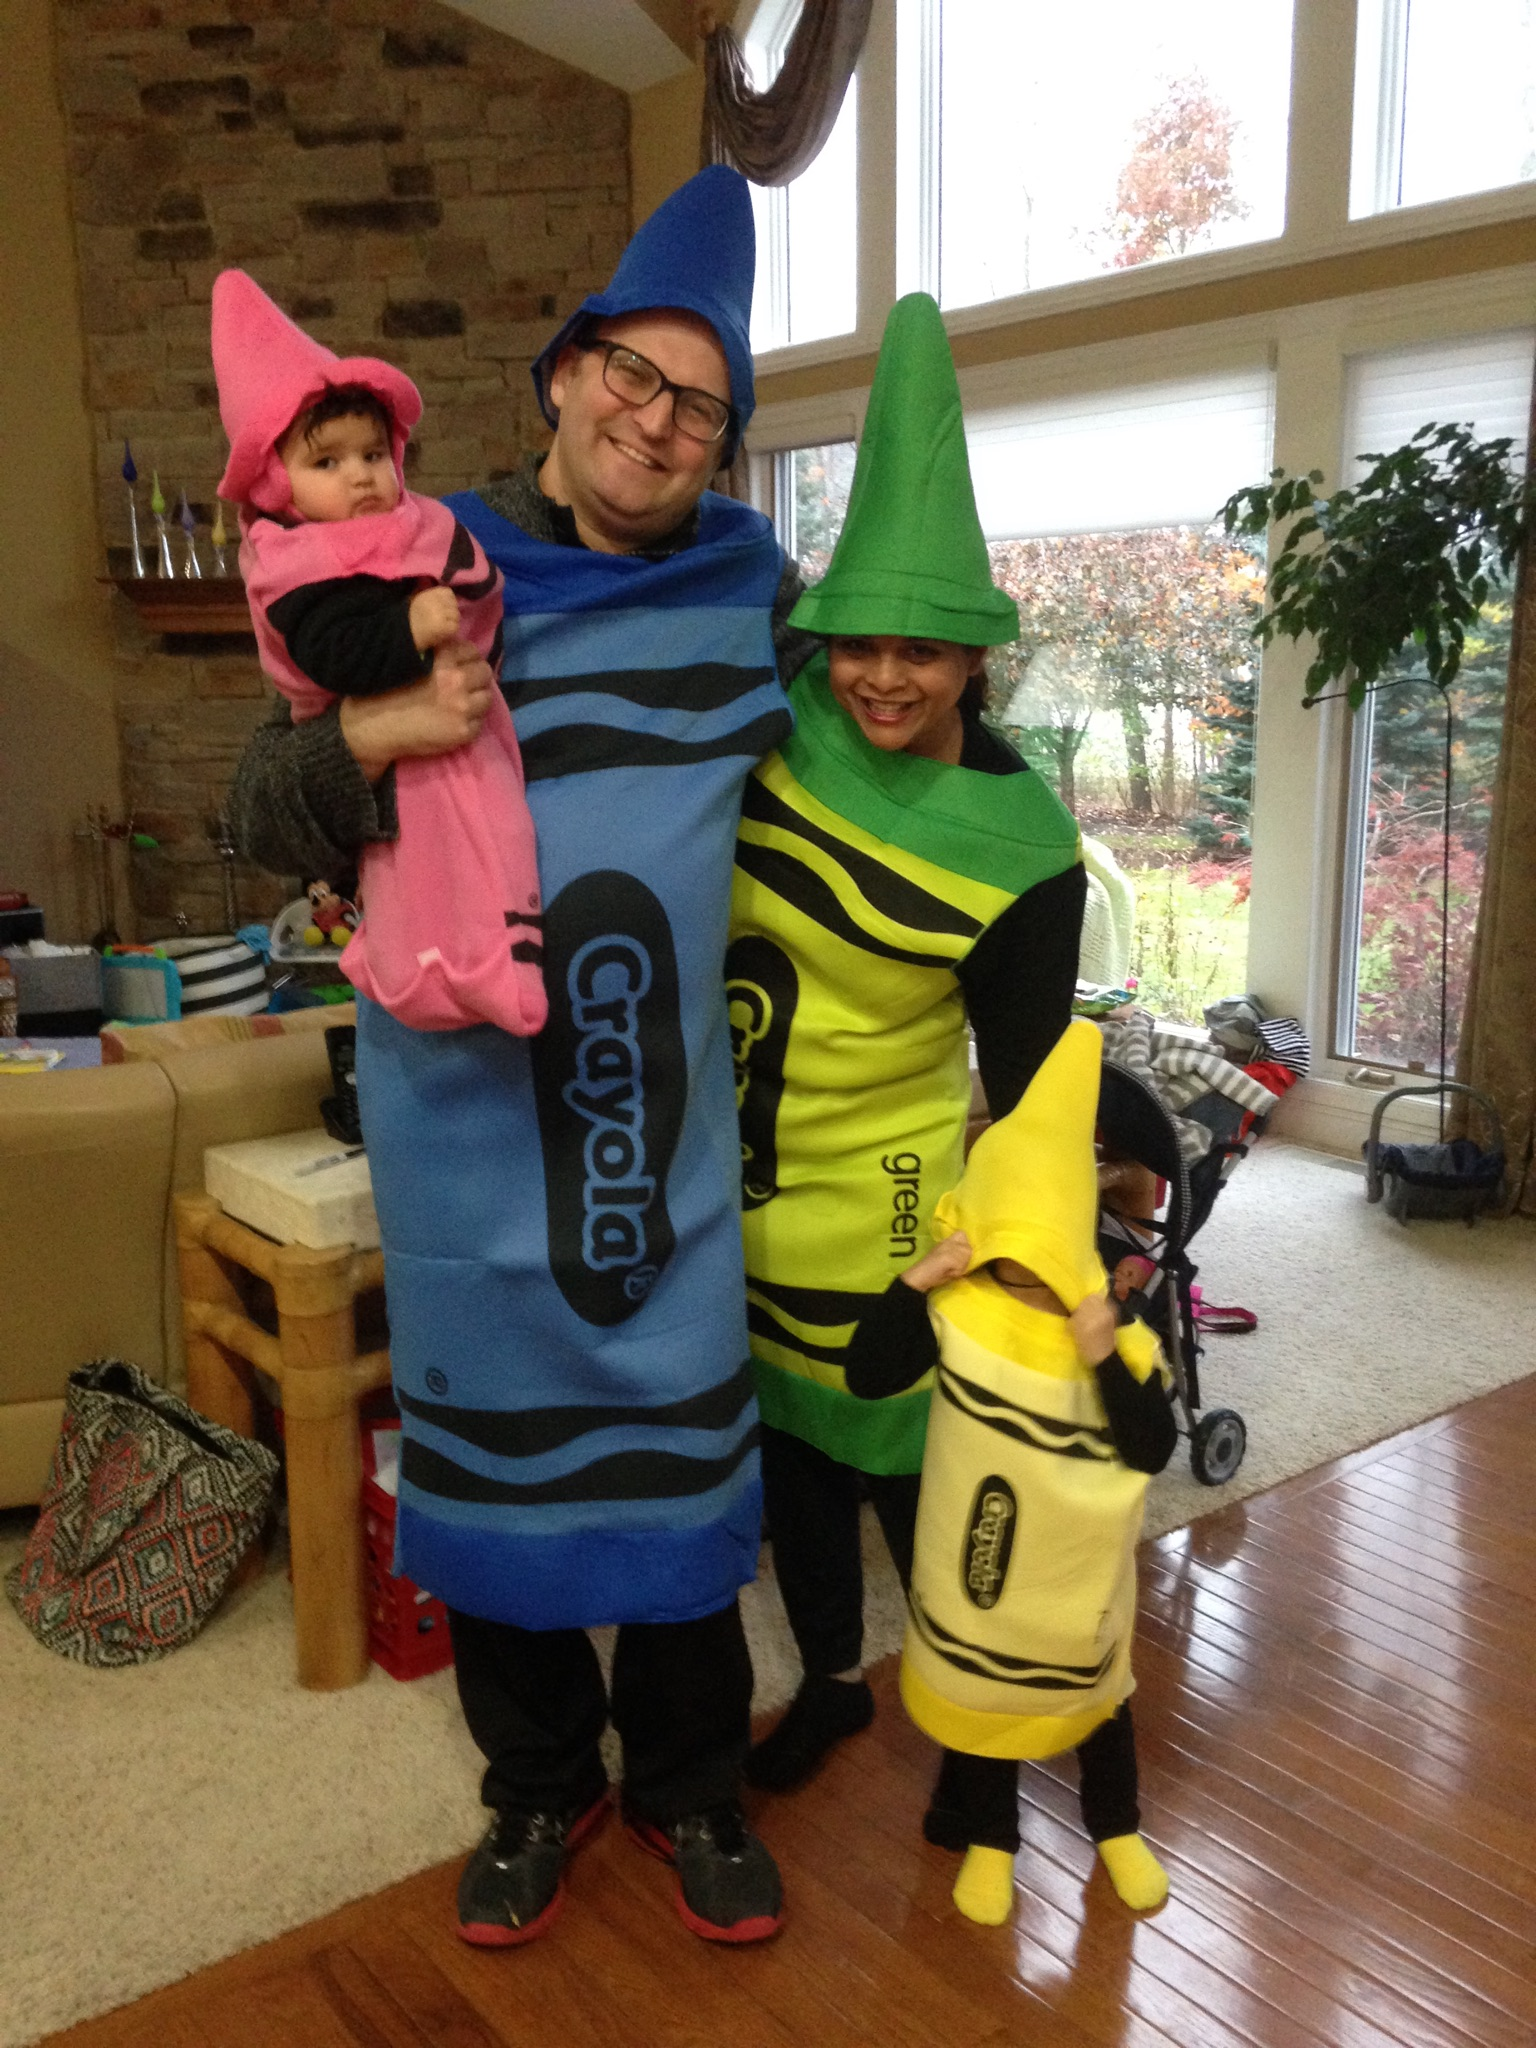 The crayon family at Halloween